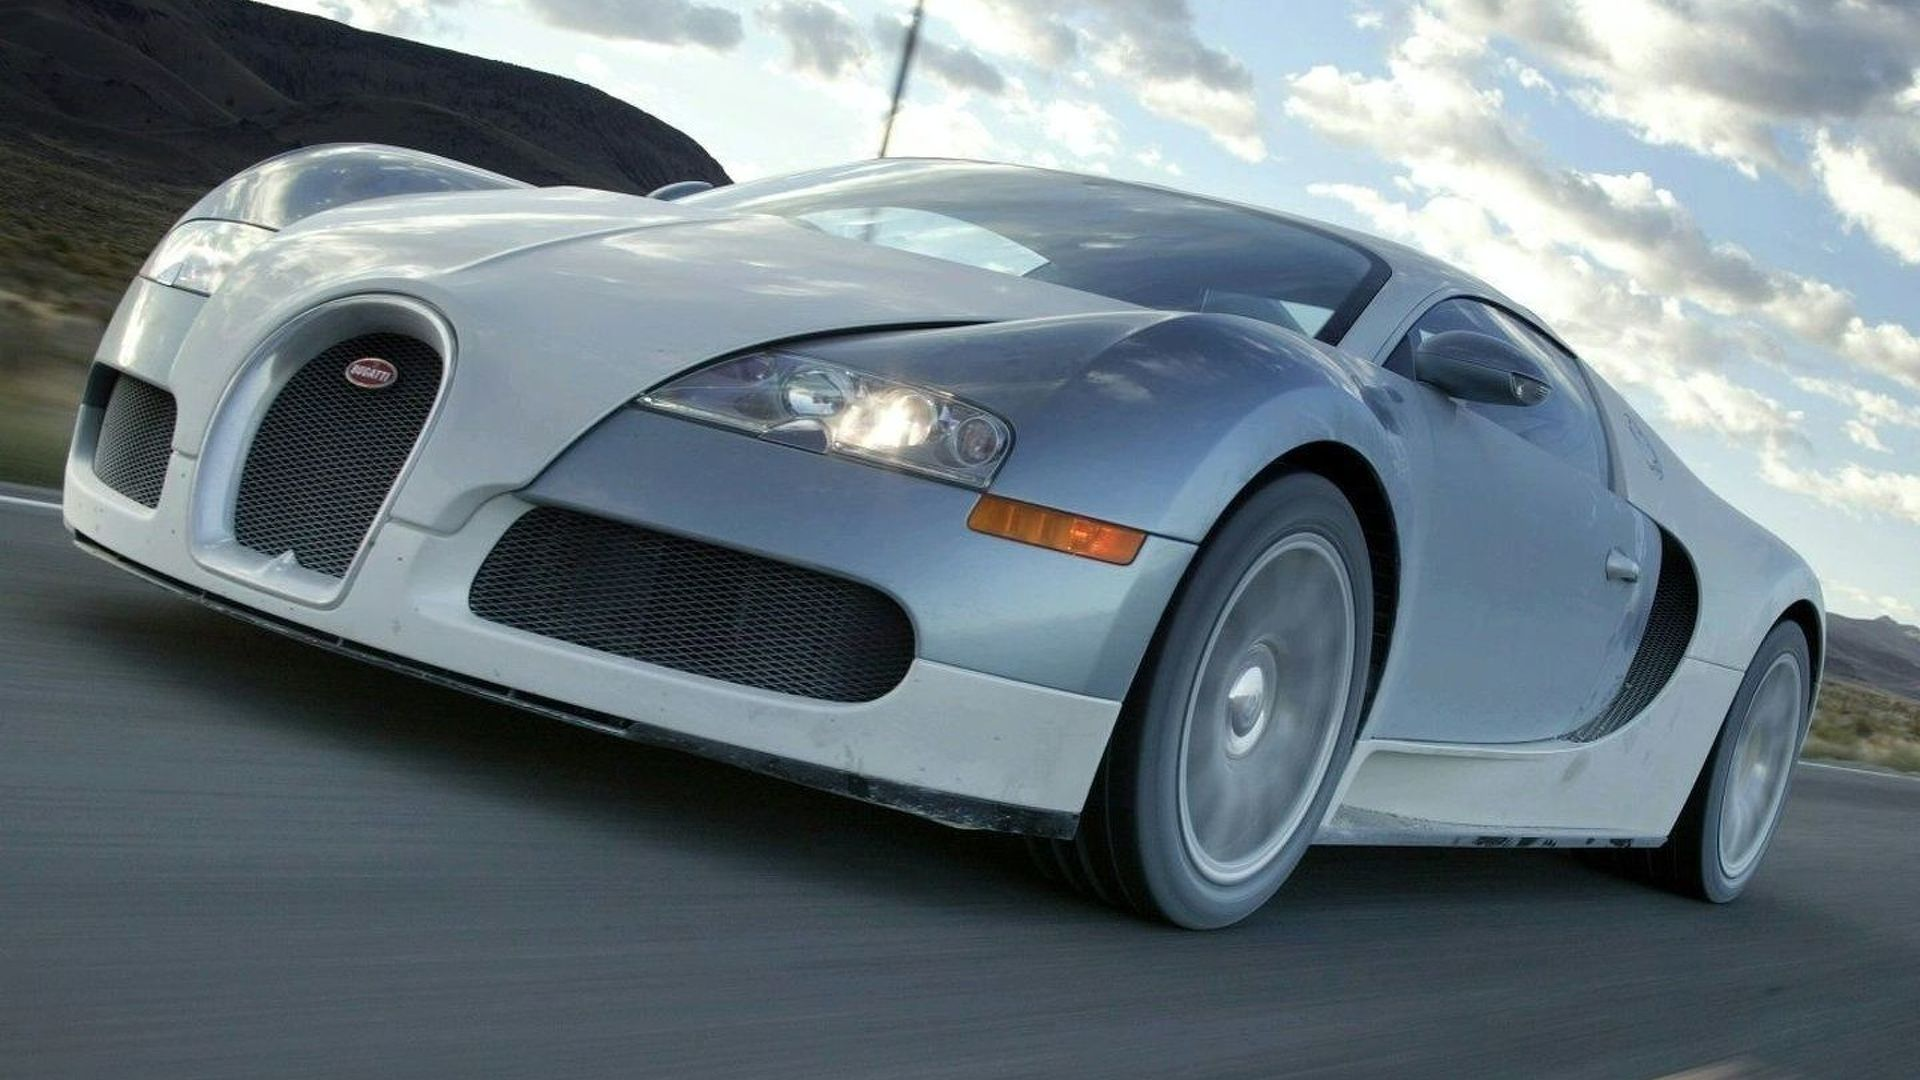 Report bugatti veyron production run almost sold out product 2009 01 16 13 00 35